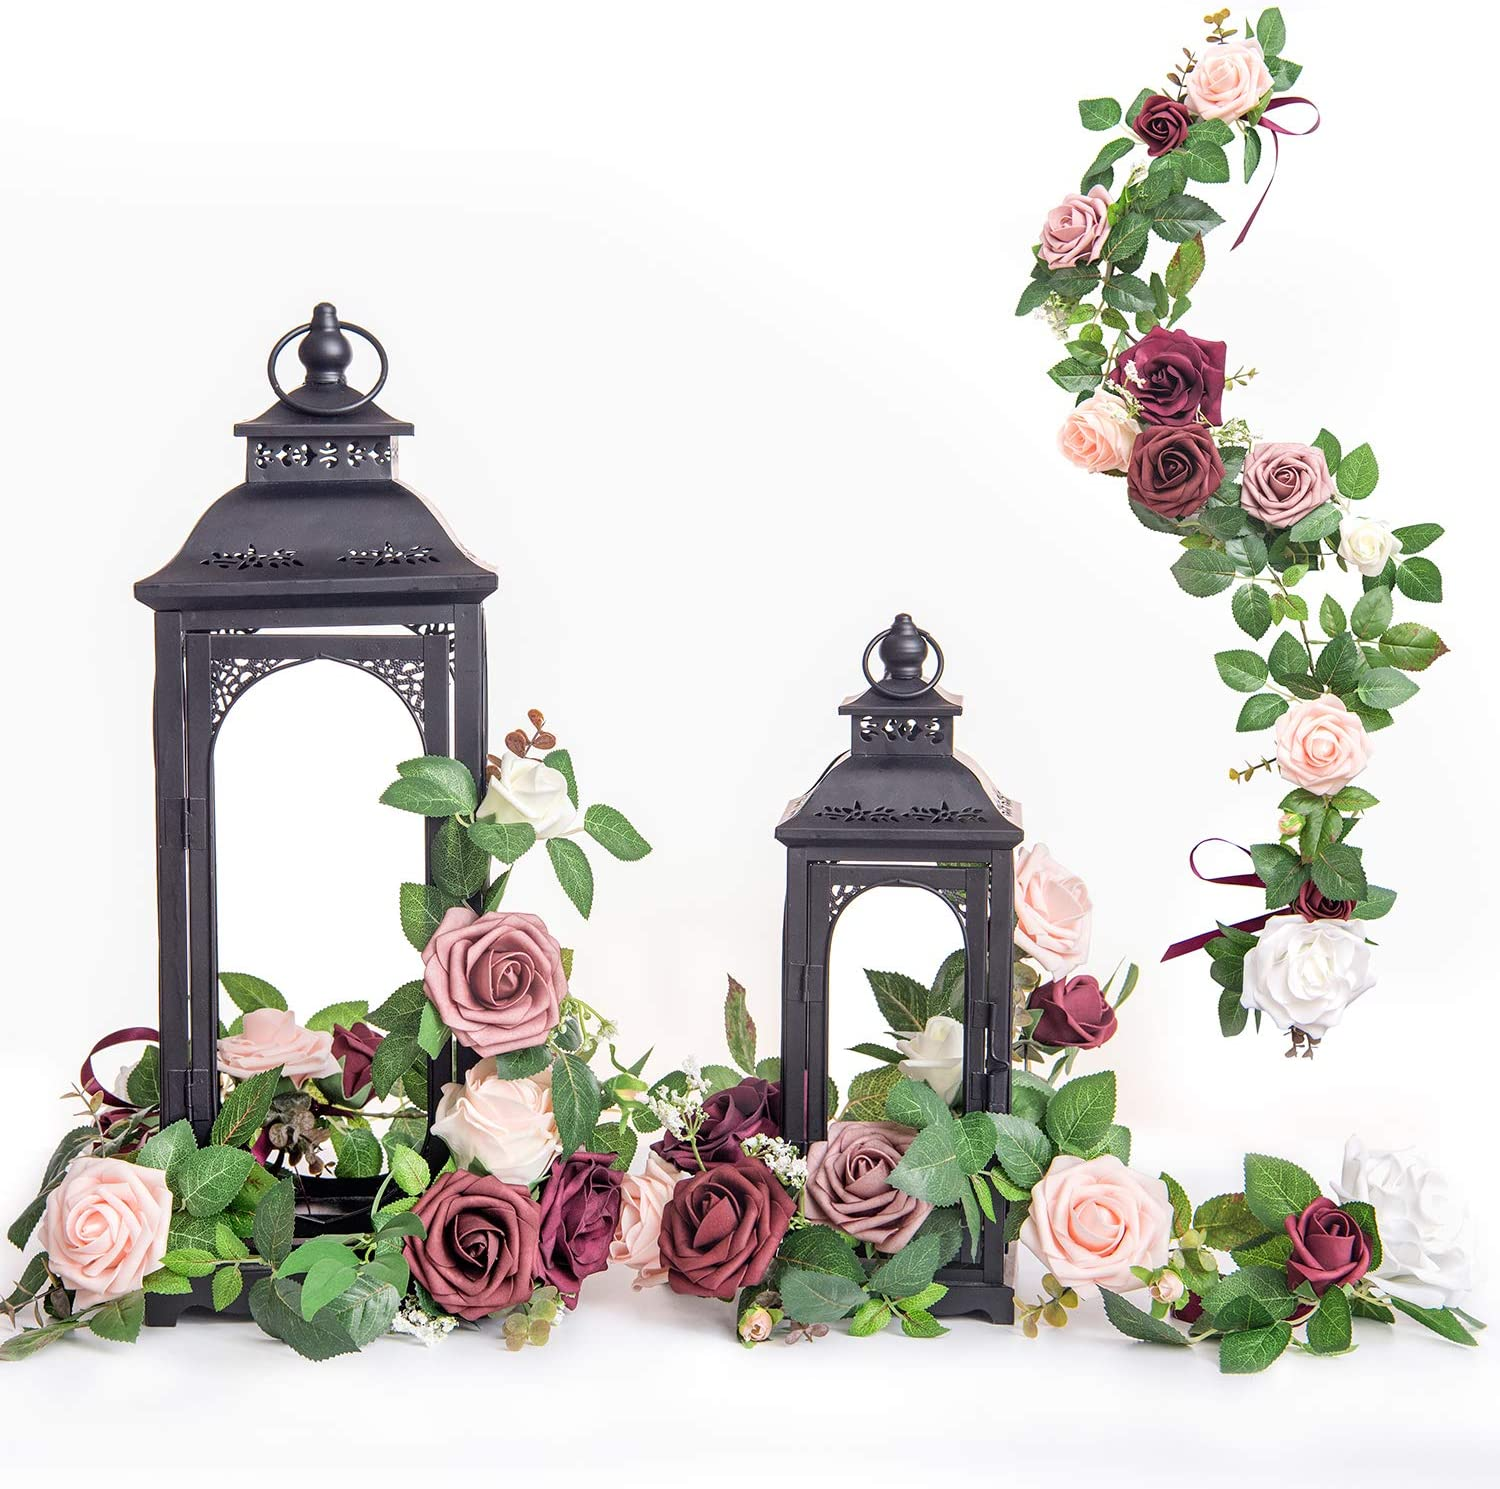 Ling's moment Handcrafted Rose Flower Garland Floral Arrangements Pack of 6 for Wedding Table Centerpieces Floral Runner Lantern Wreath Decorations (Burgundy +Blush)